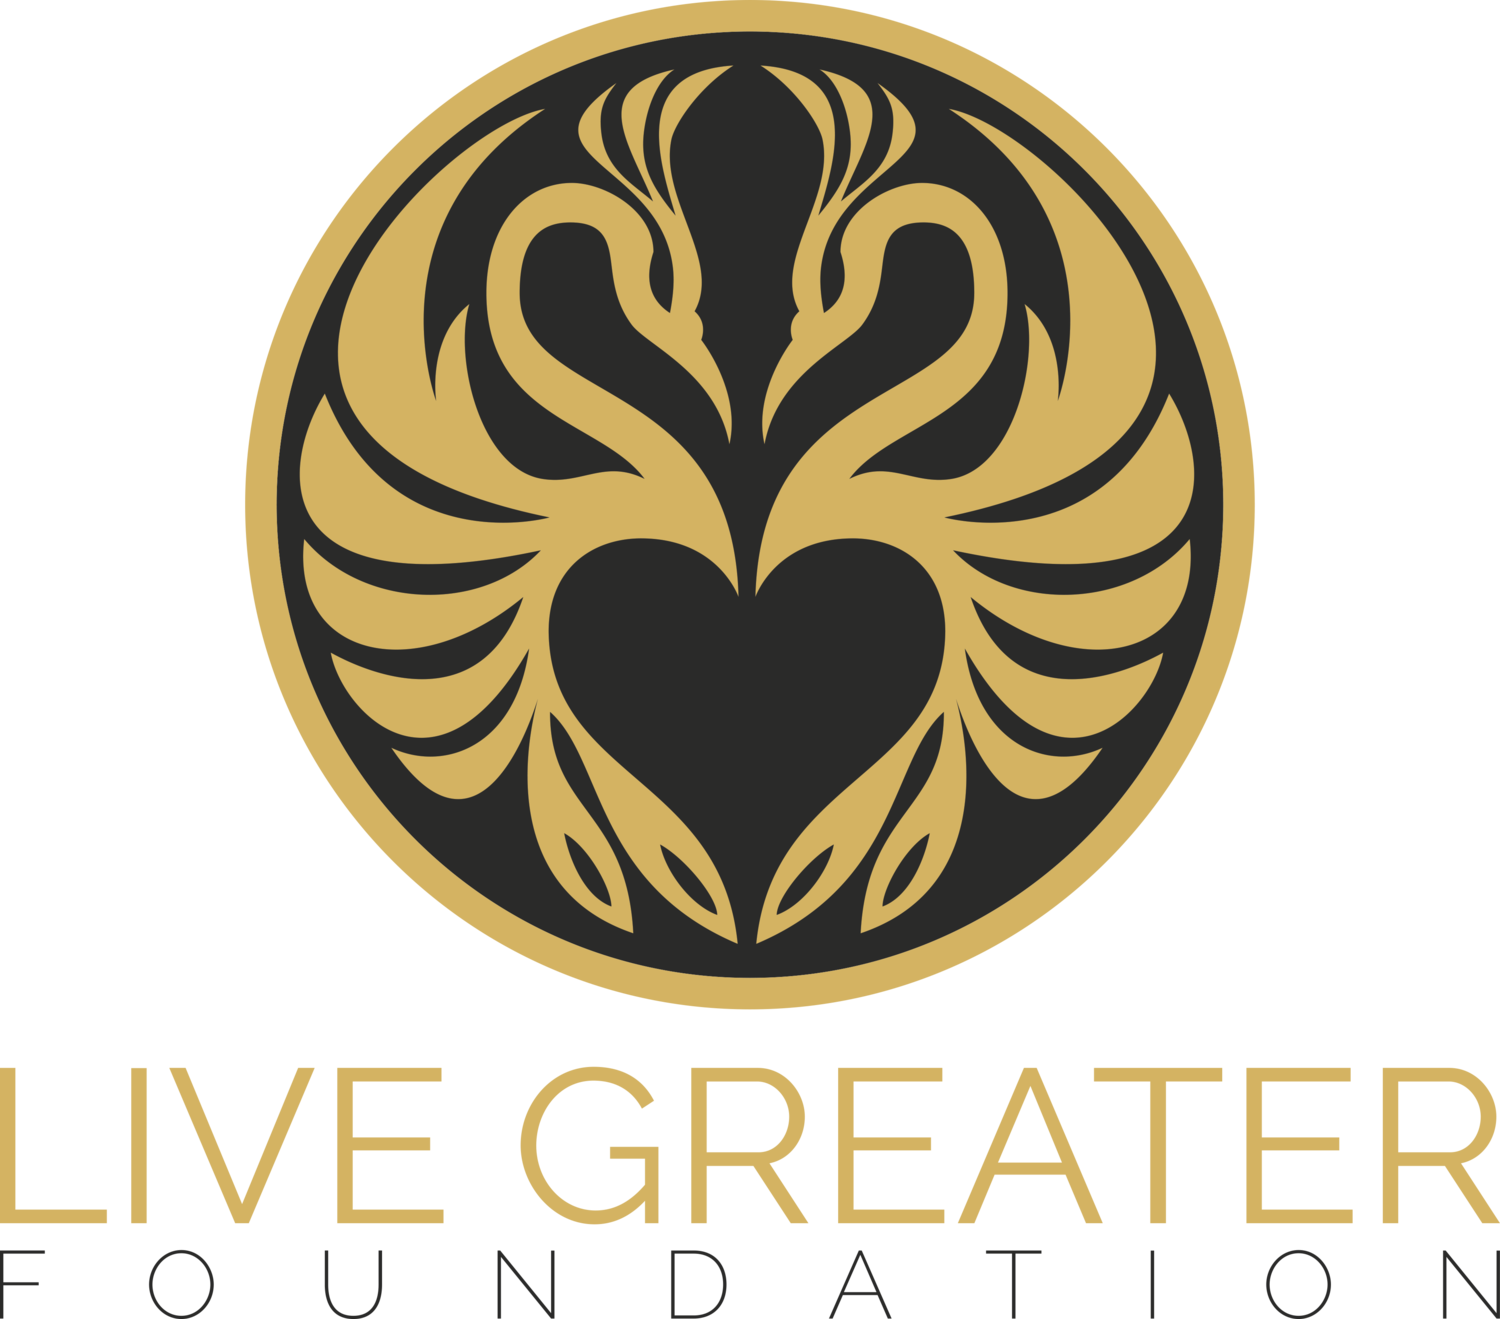 The Live Greater Foundation